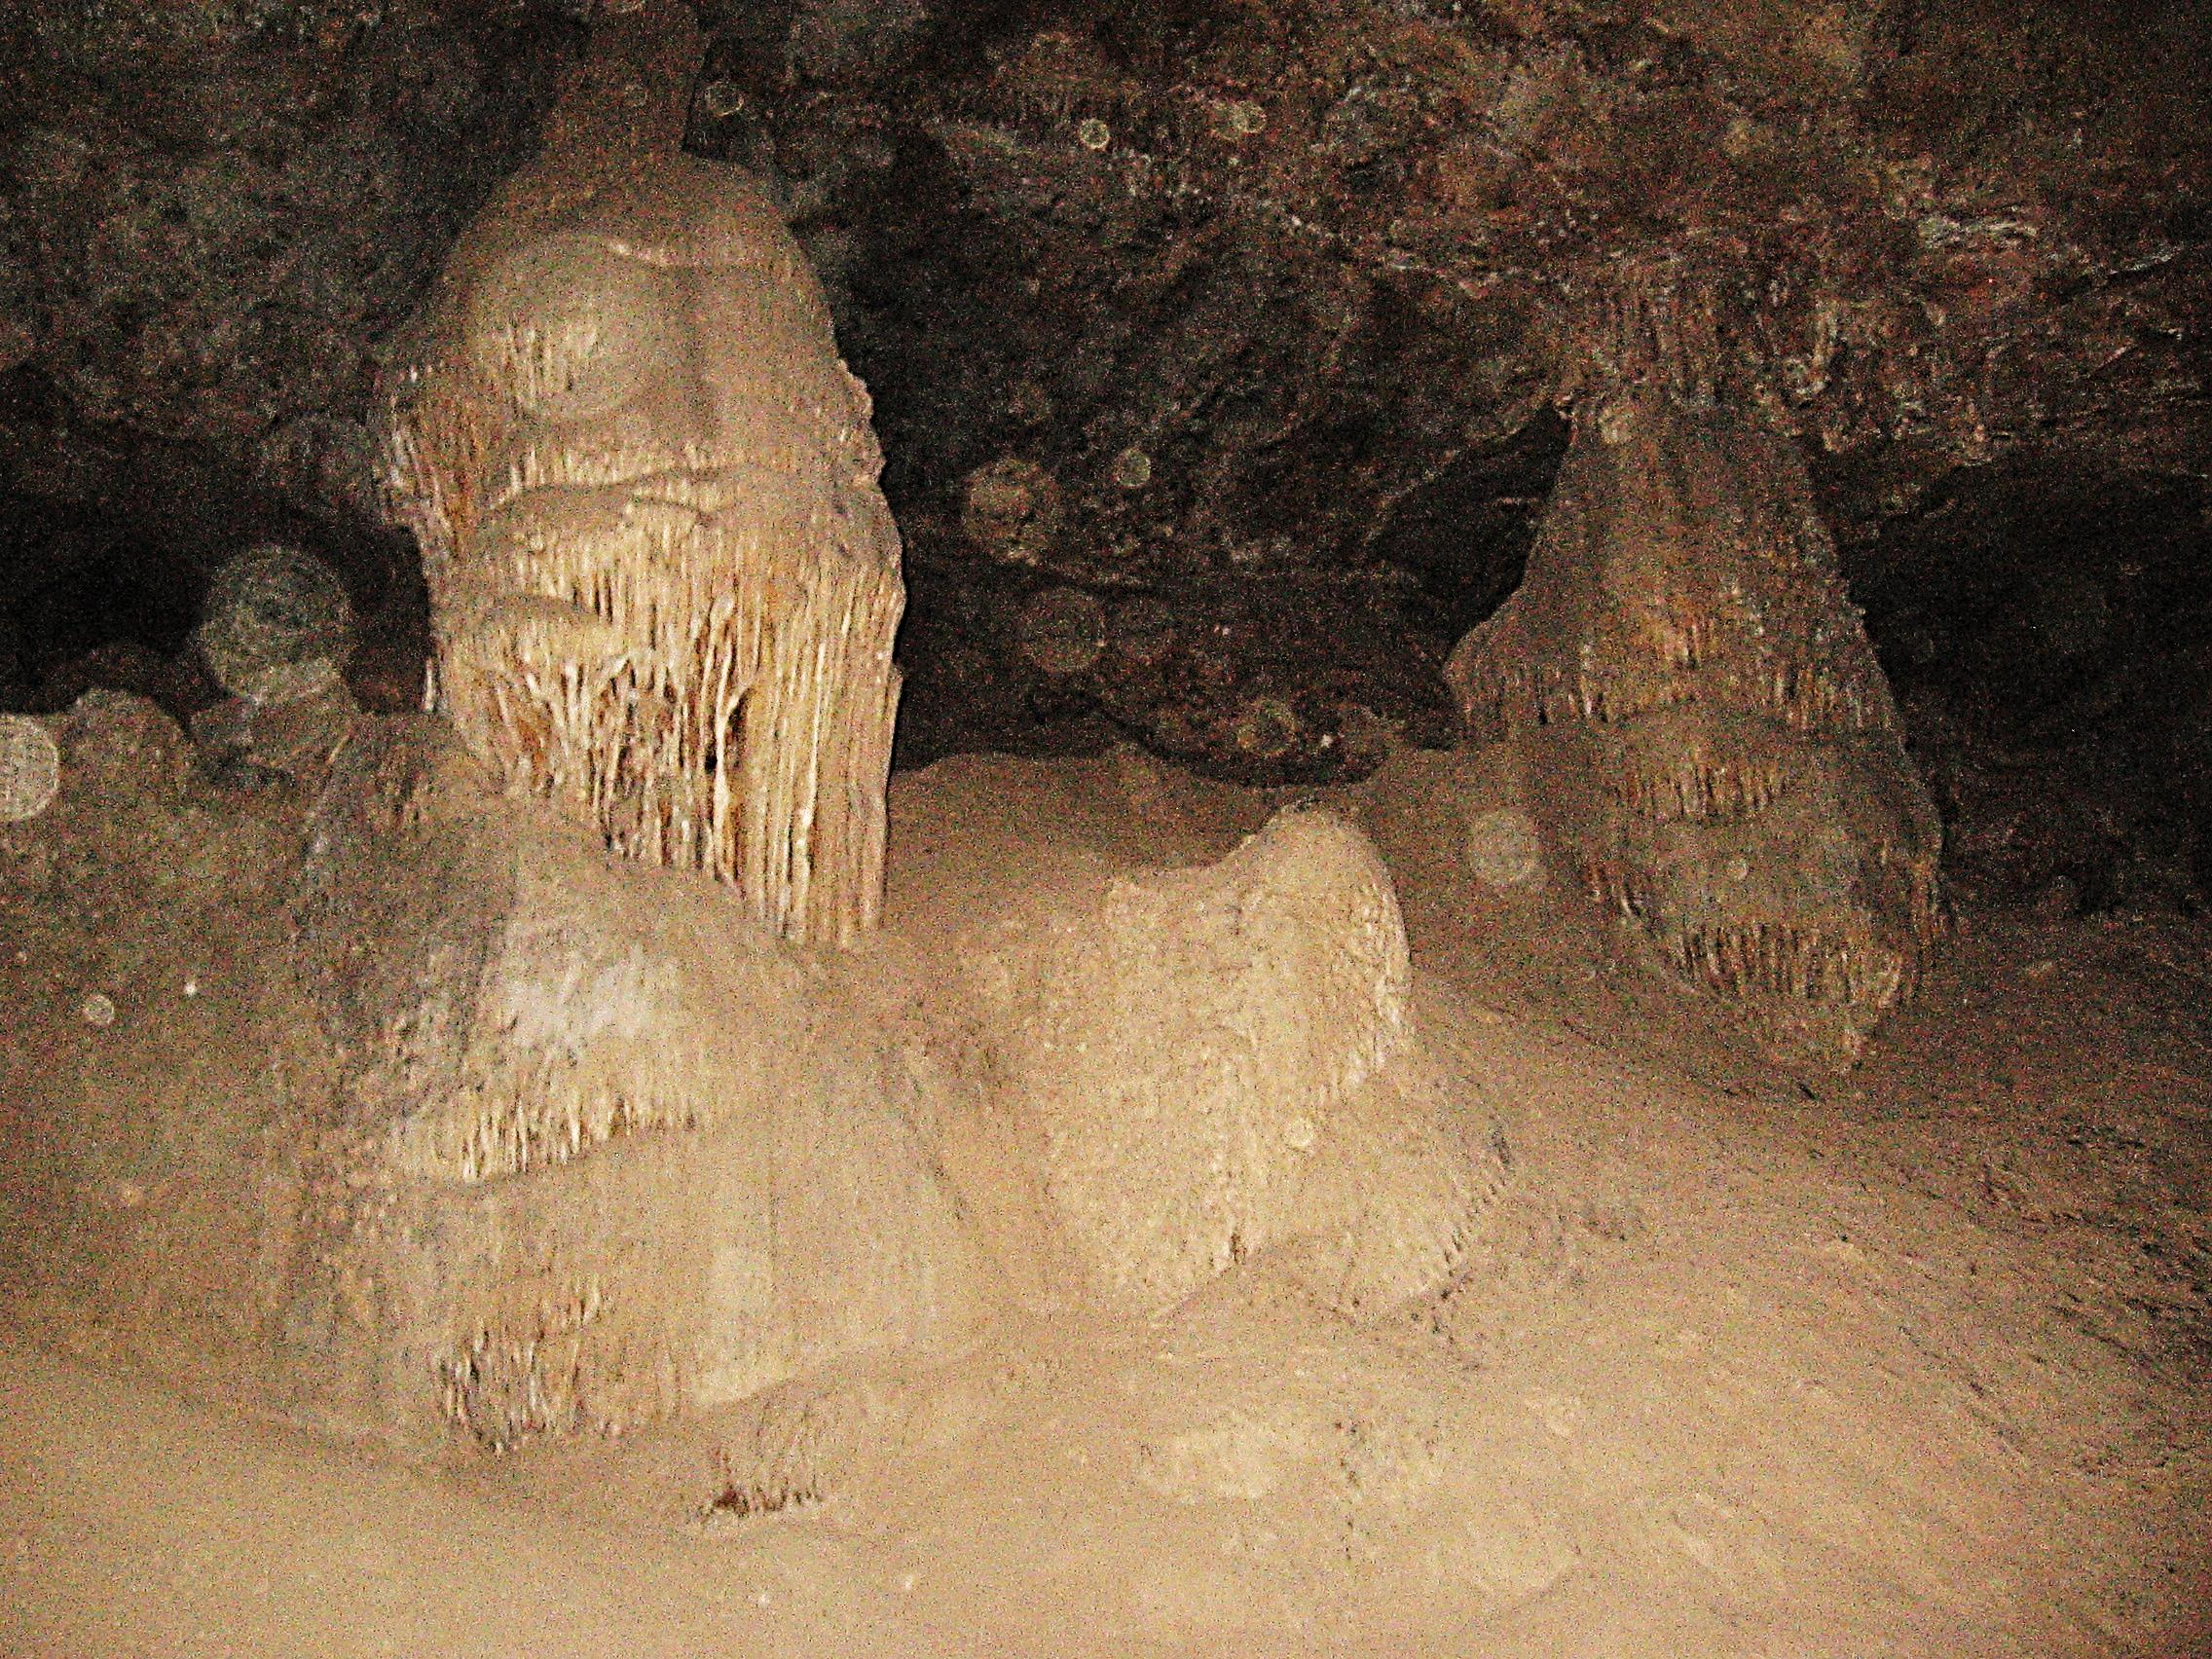 Figure 4: Large columns at the east end of Coronado Cave.